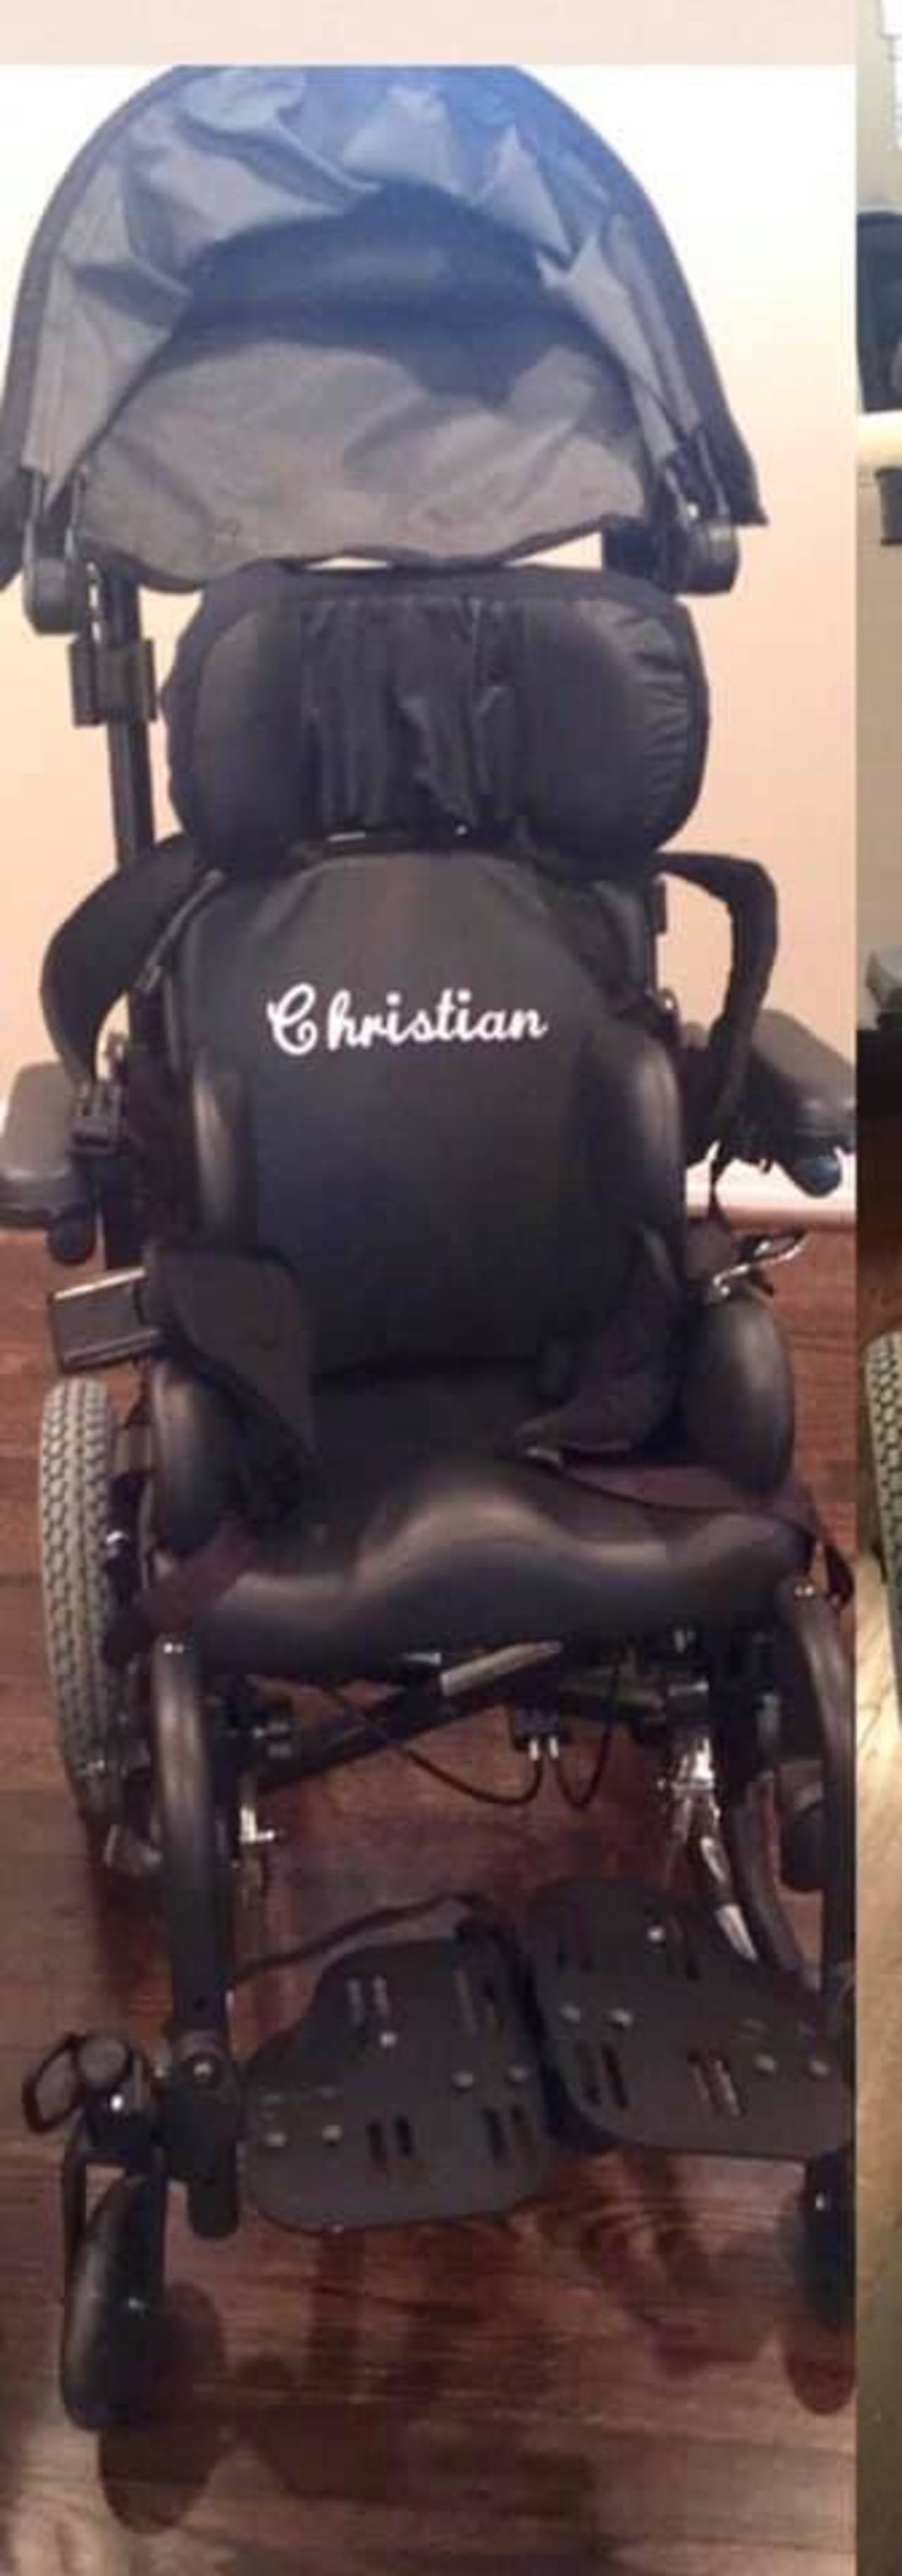 Wheelchair of Christian Gonzalez 6-25-2019